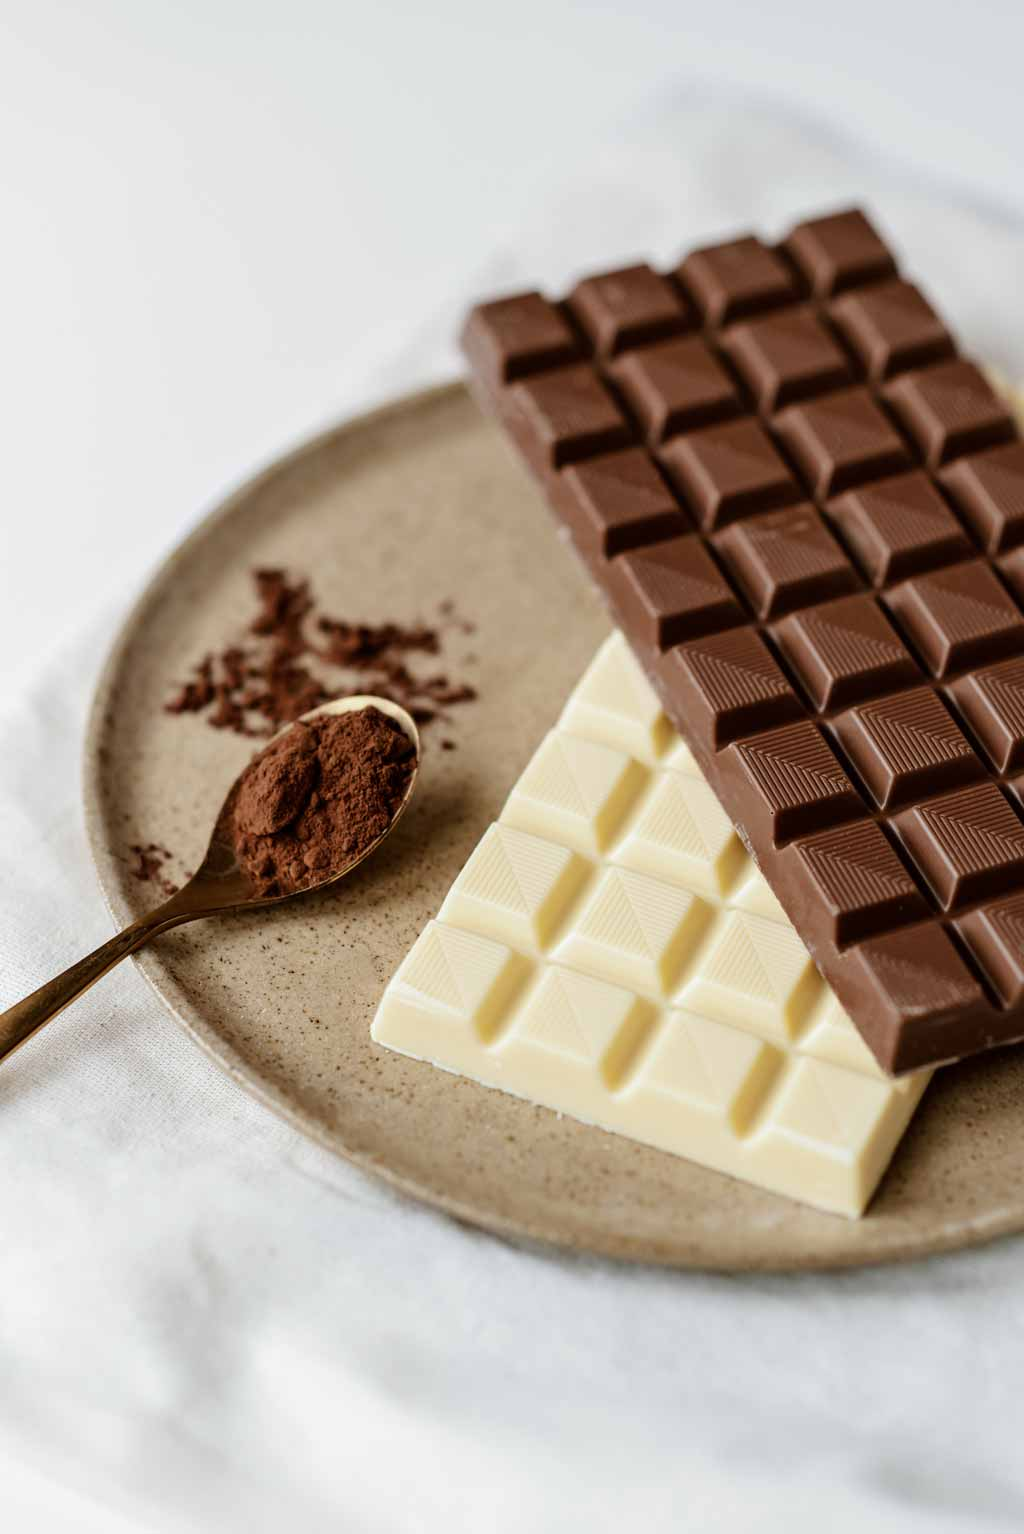 a dark chocolate bar on top of a white chocolate bar